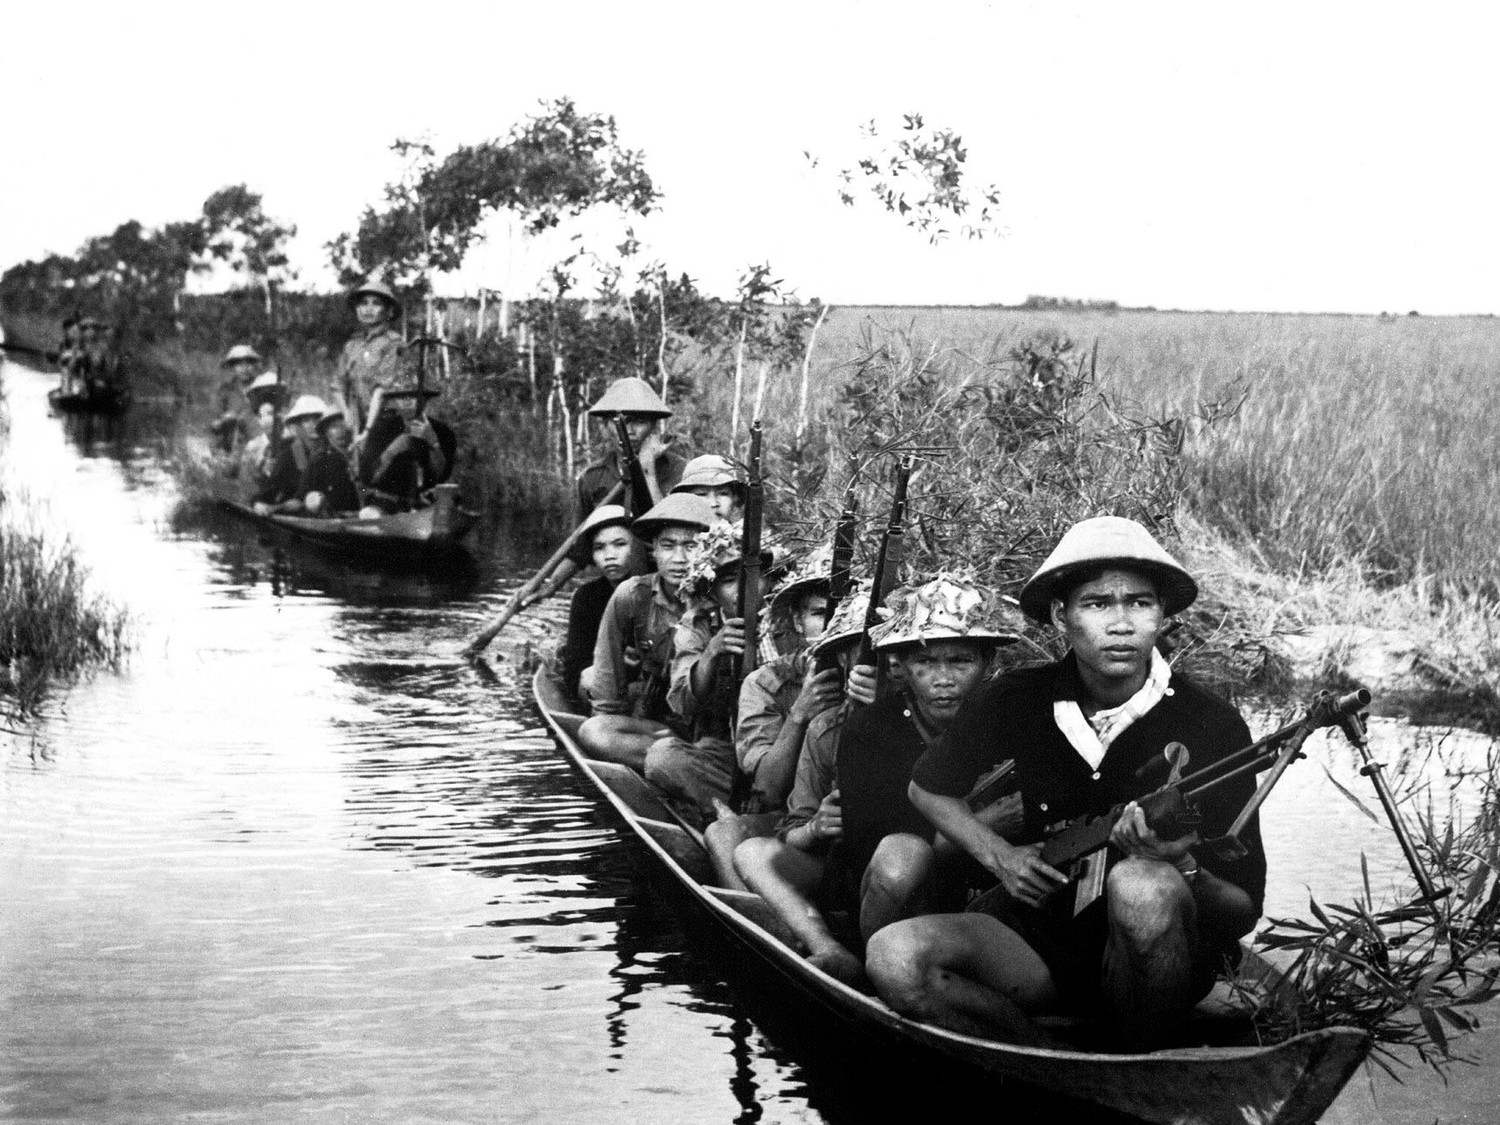 Vietcong soldiers entering Vietnam from Cambodia via the Ho Chi Minh Trail.